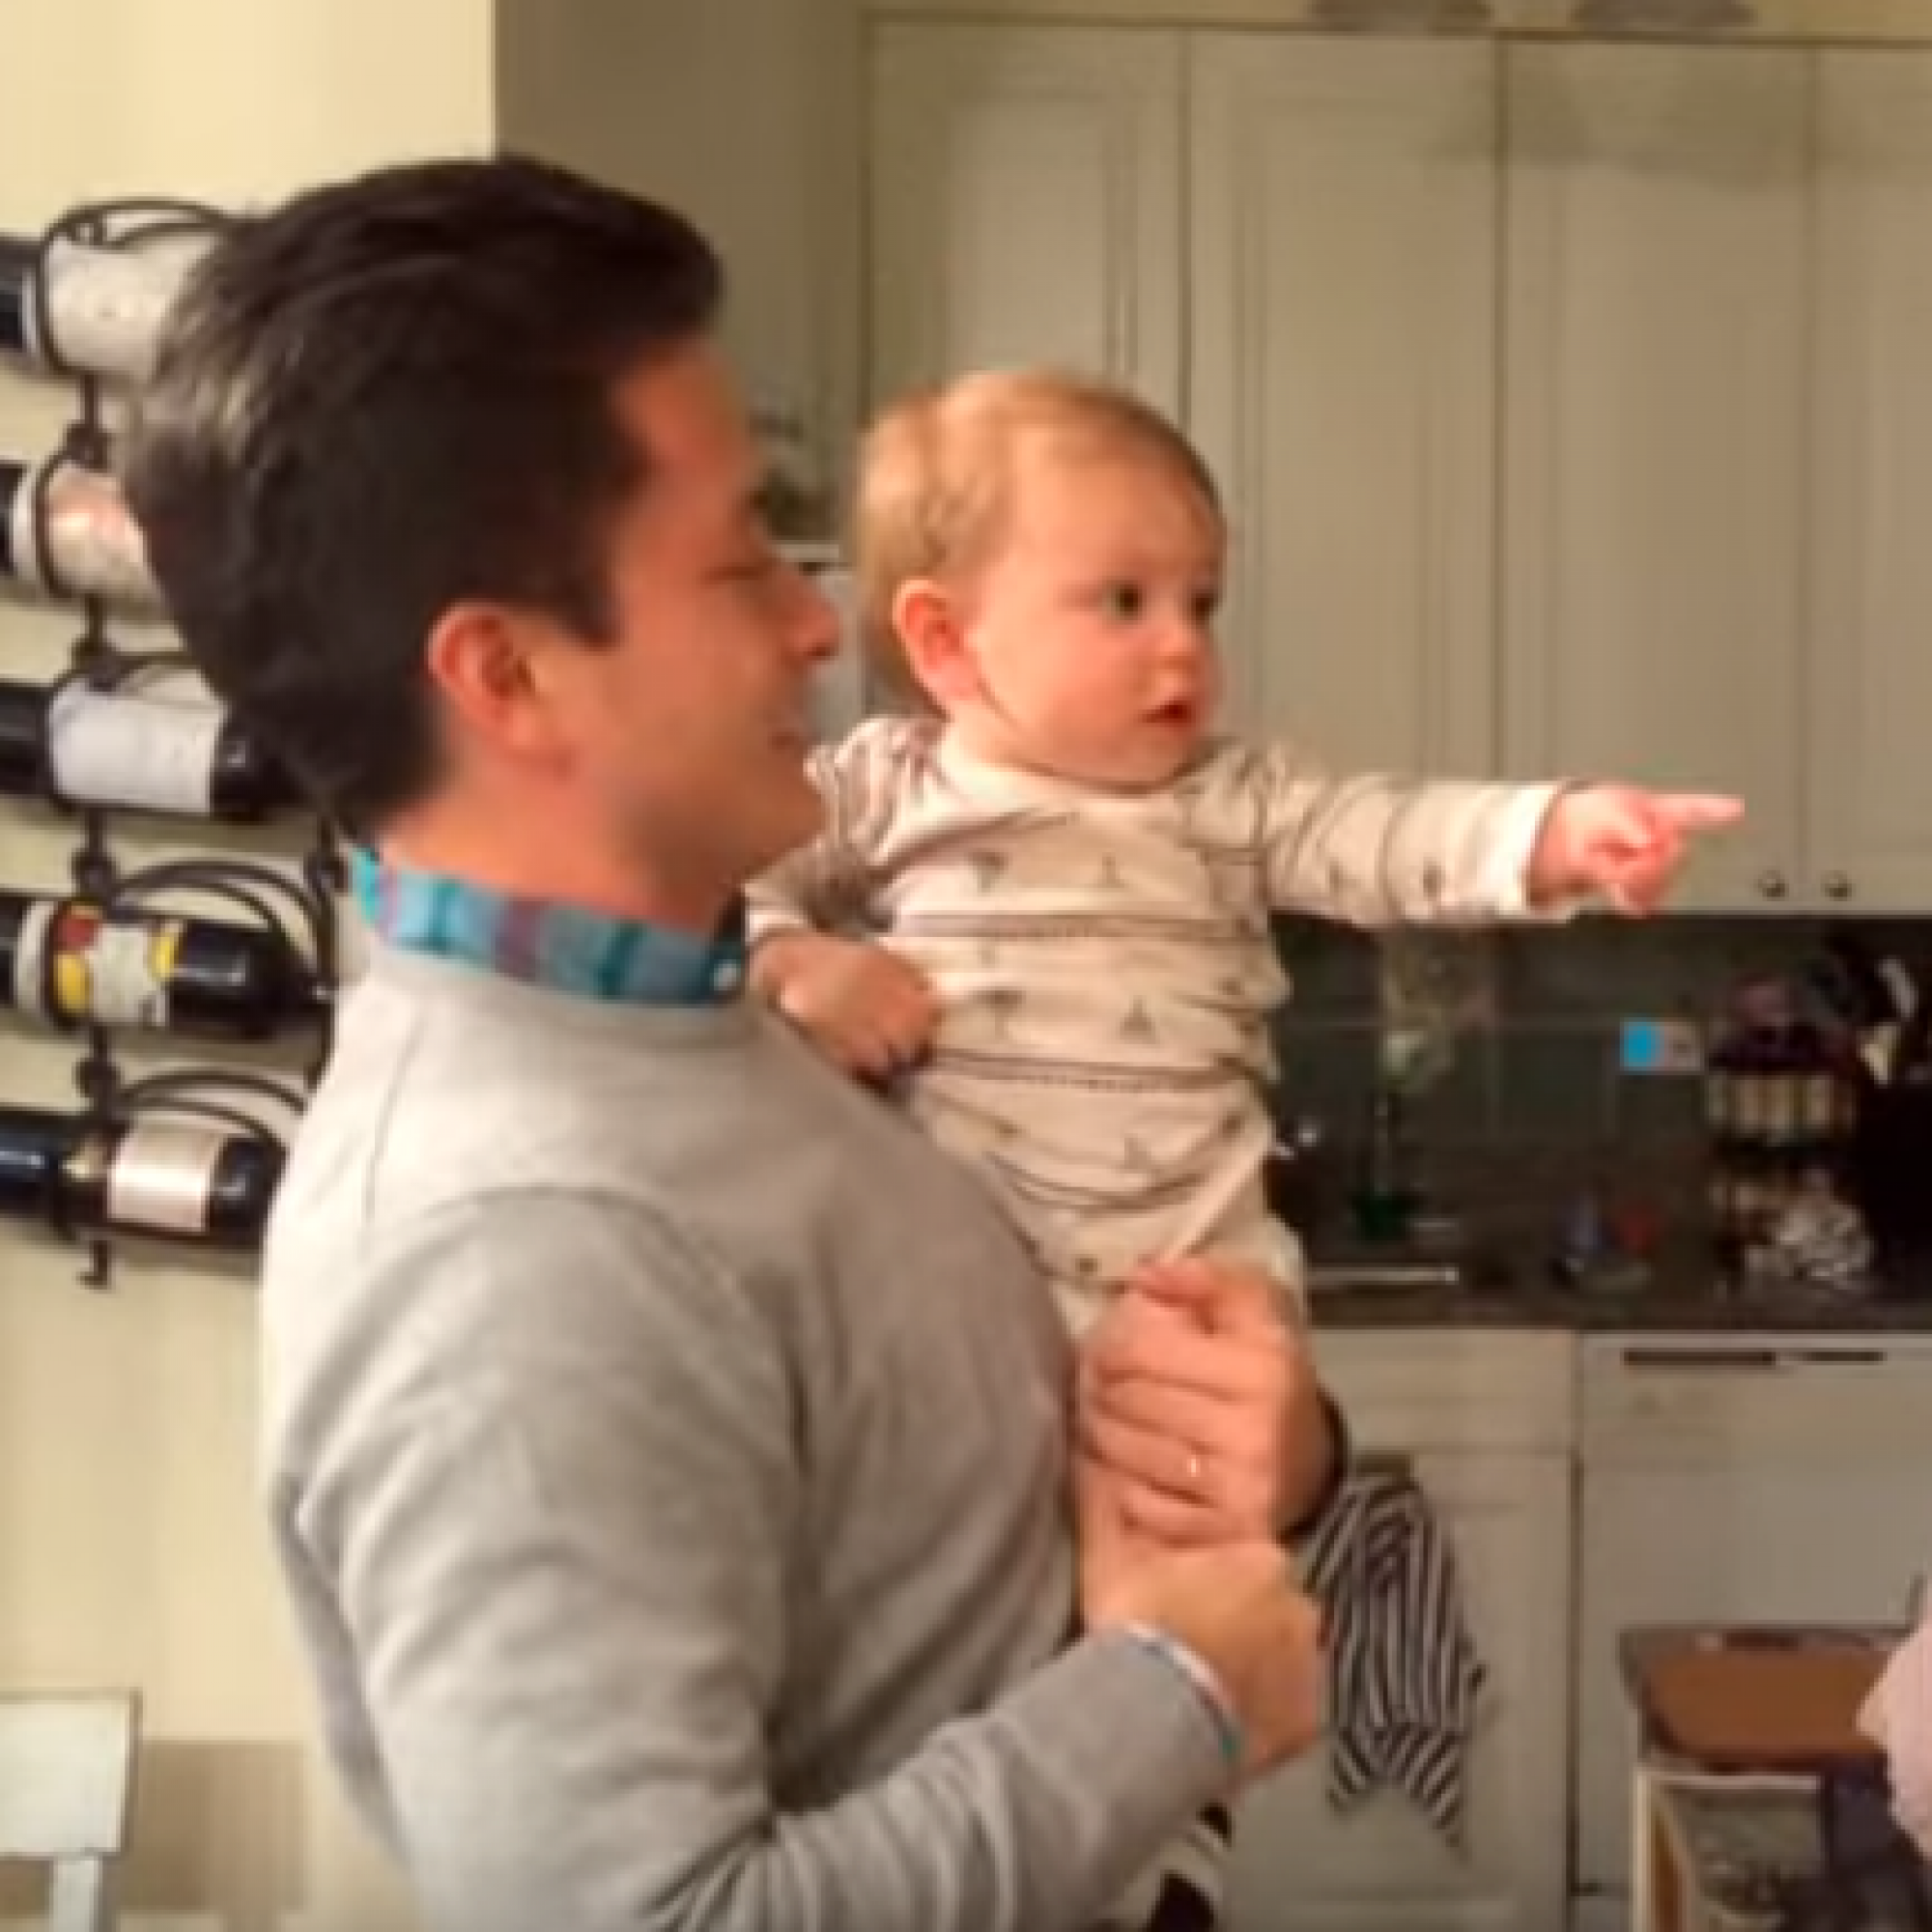 This baby got super confused when he was babysat by his dad's twin